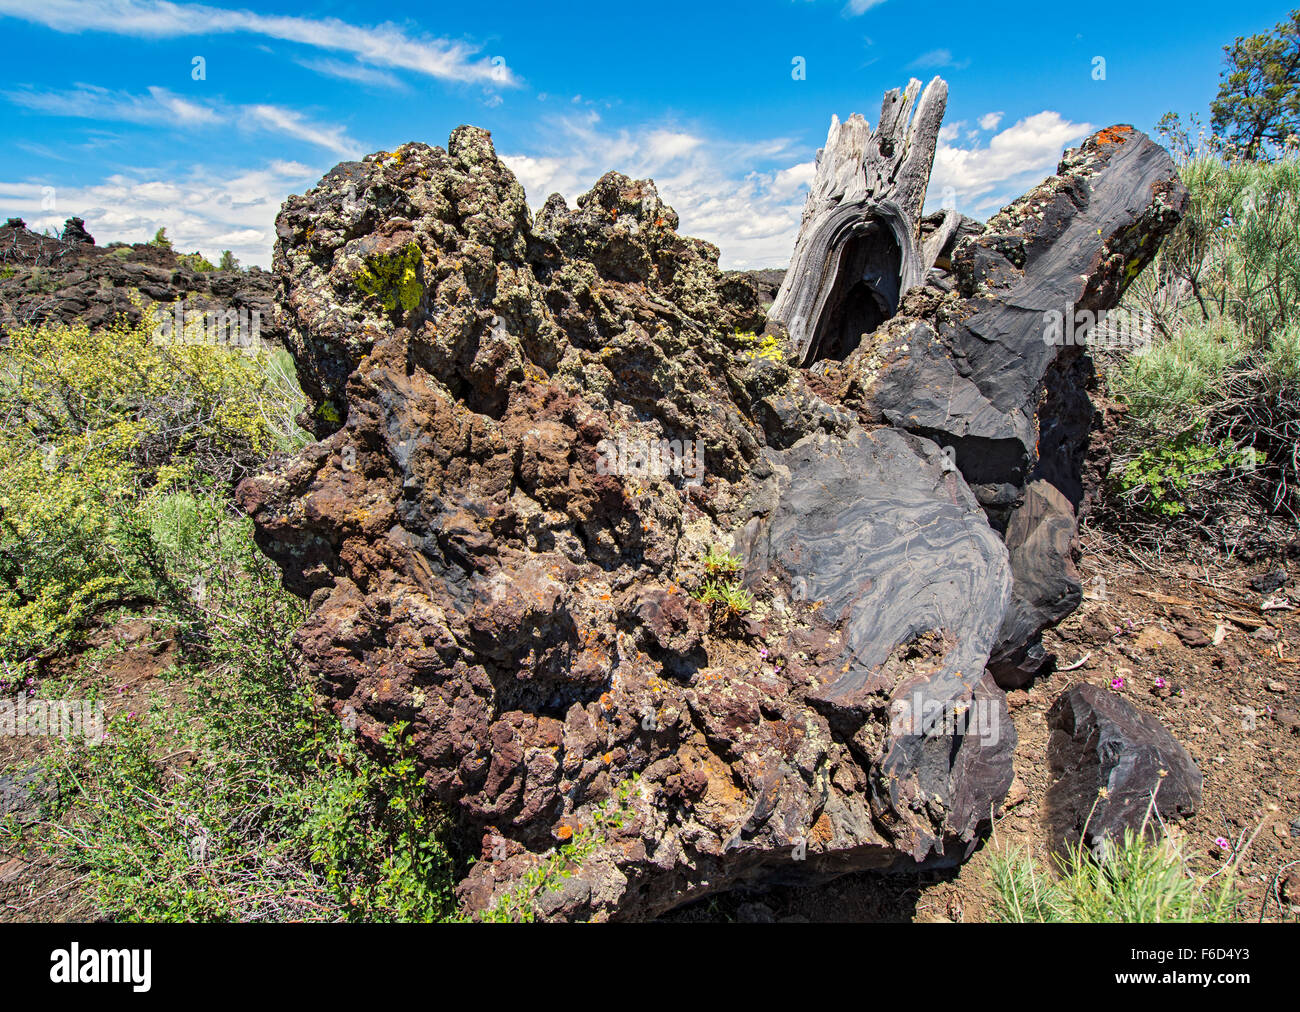 Idaho, Craters of the Moon National Monument and Preserve, Devil's Orchard Trail through lava field Stock Photo